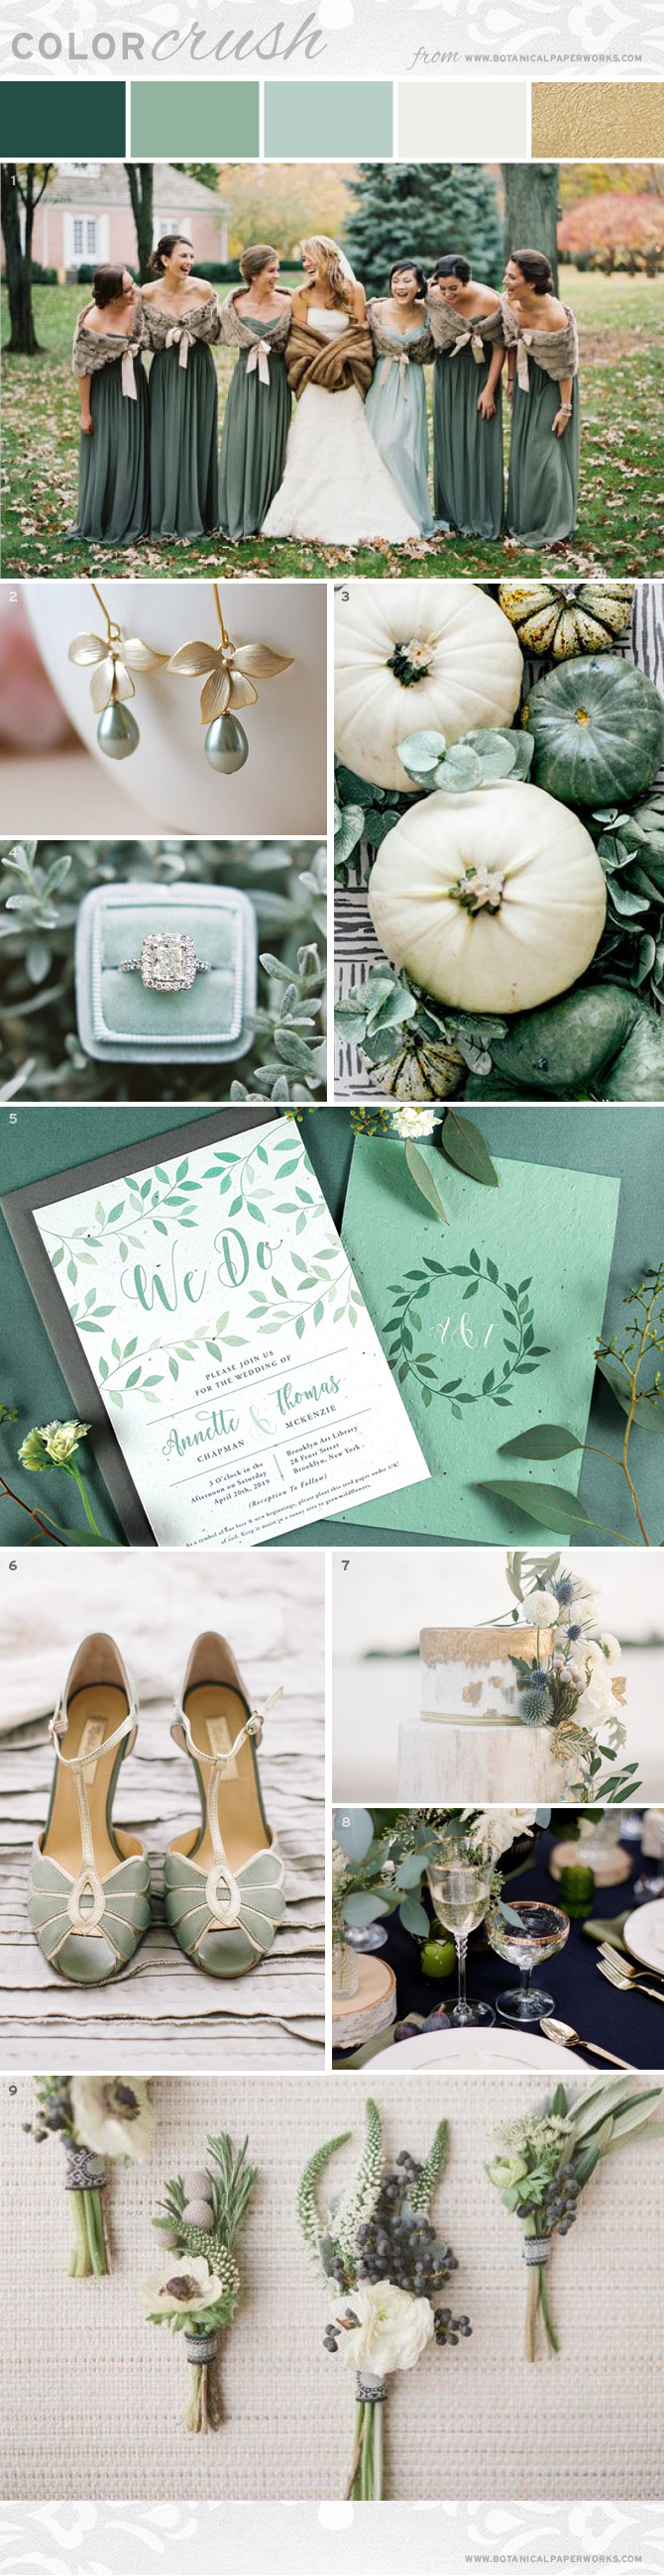 This wedding inspiration features wintery sage tones paired with warm ivory, rustic textures, cool greenery, and gold accents.